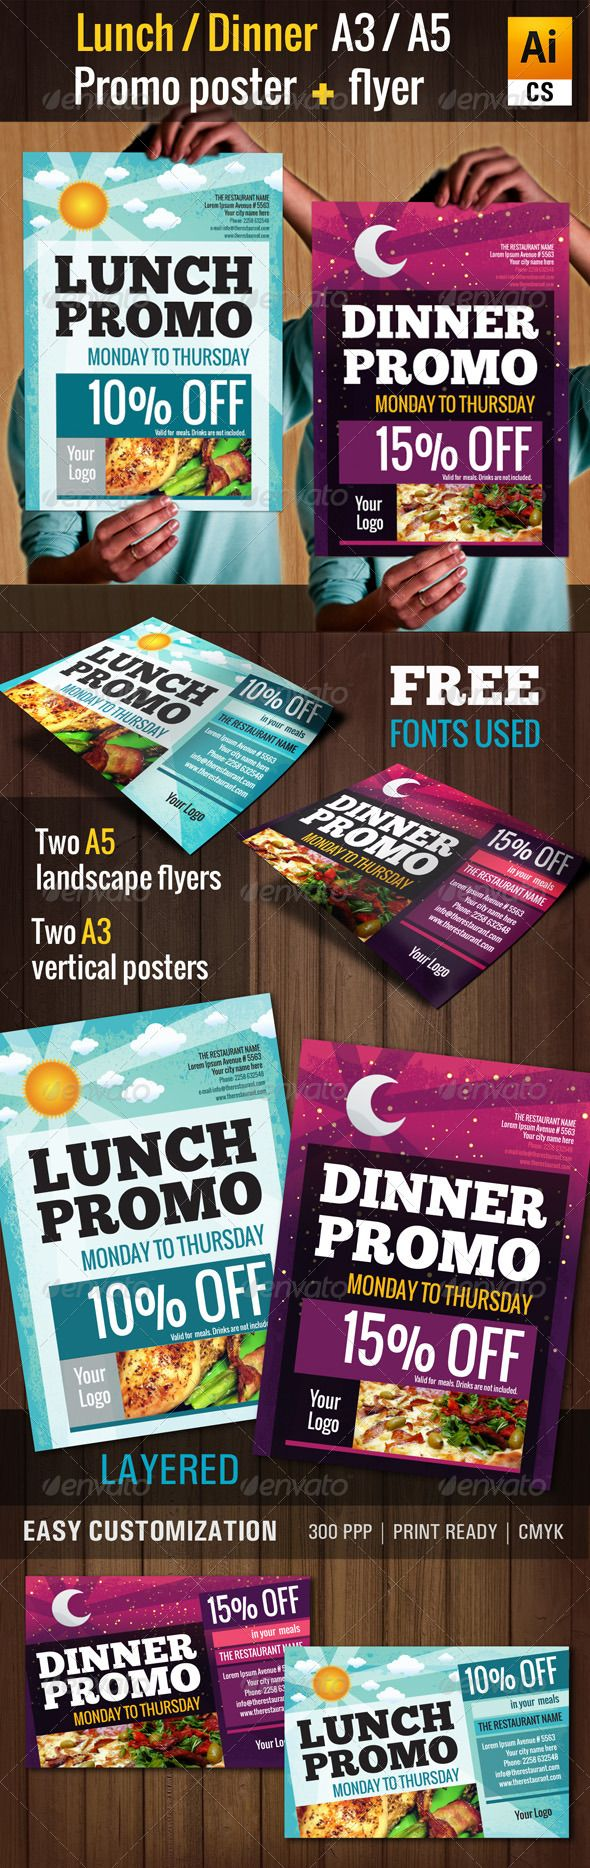 Lunch  Dinner Promo PosterFlyer A A  Fonts Template And